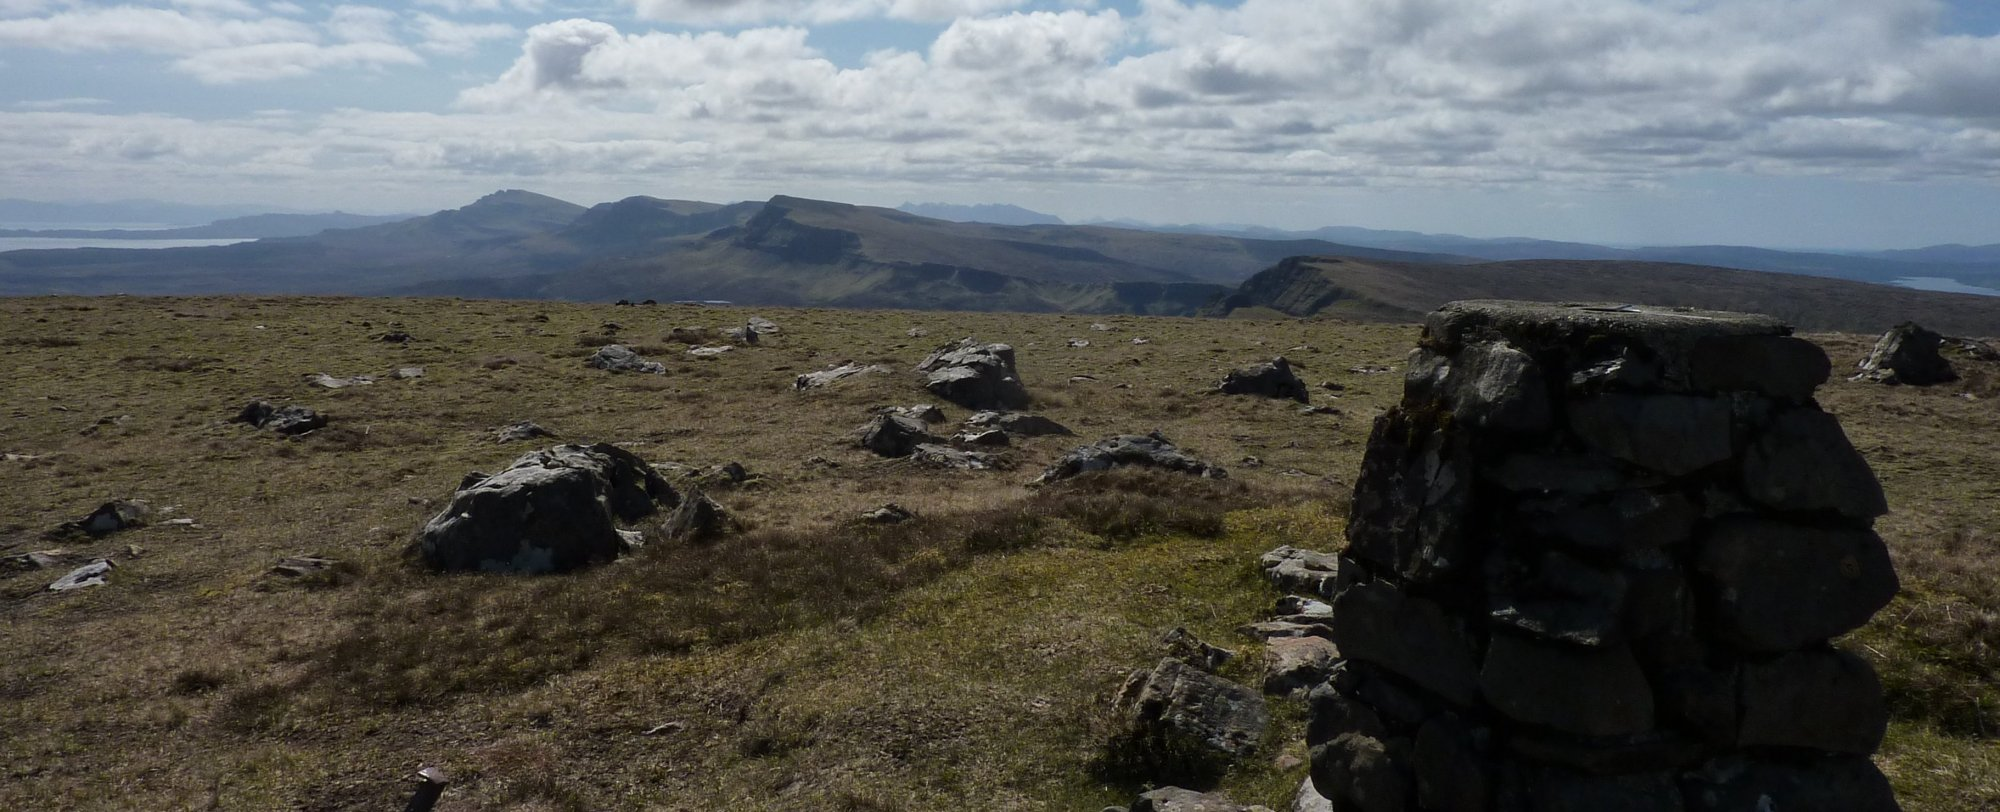 The Trotternish ridge and the distant Cuillins behind the trig point on Meall na Suiramach